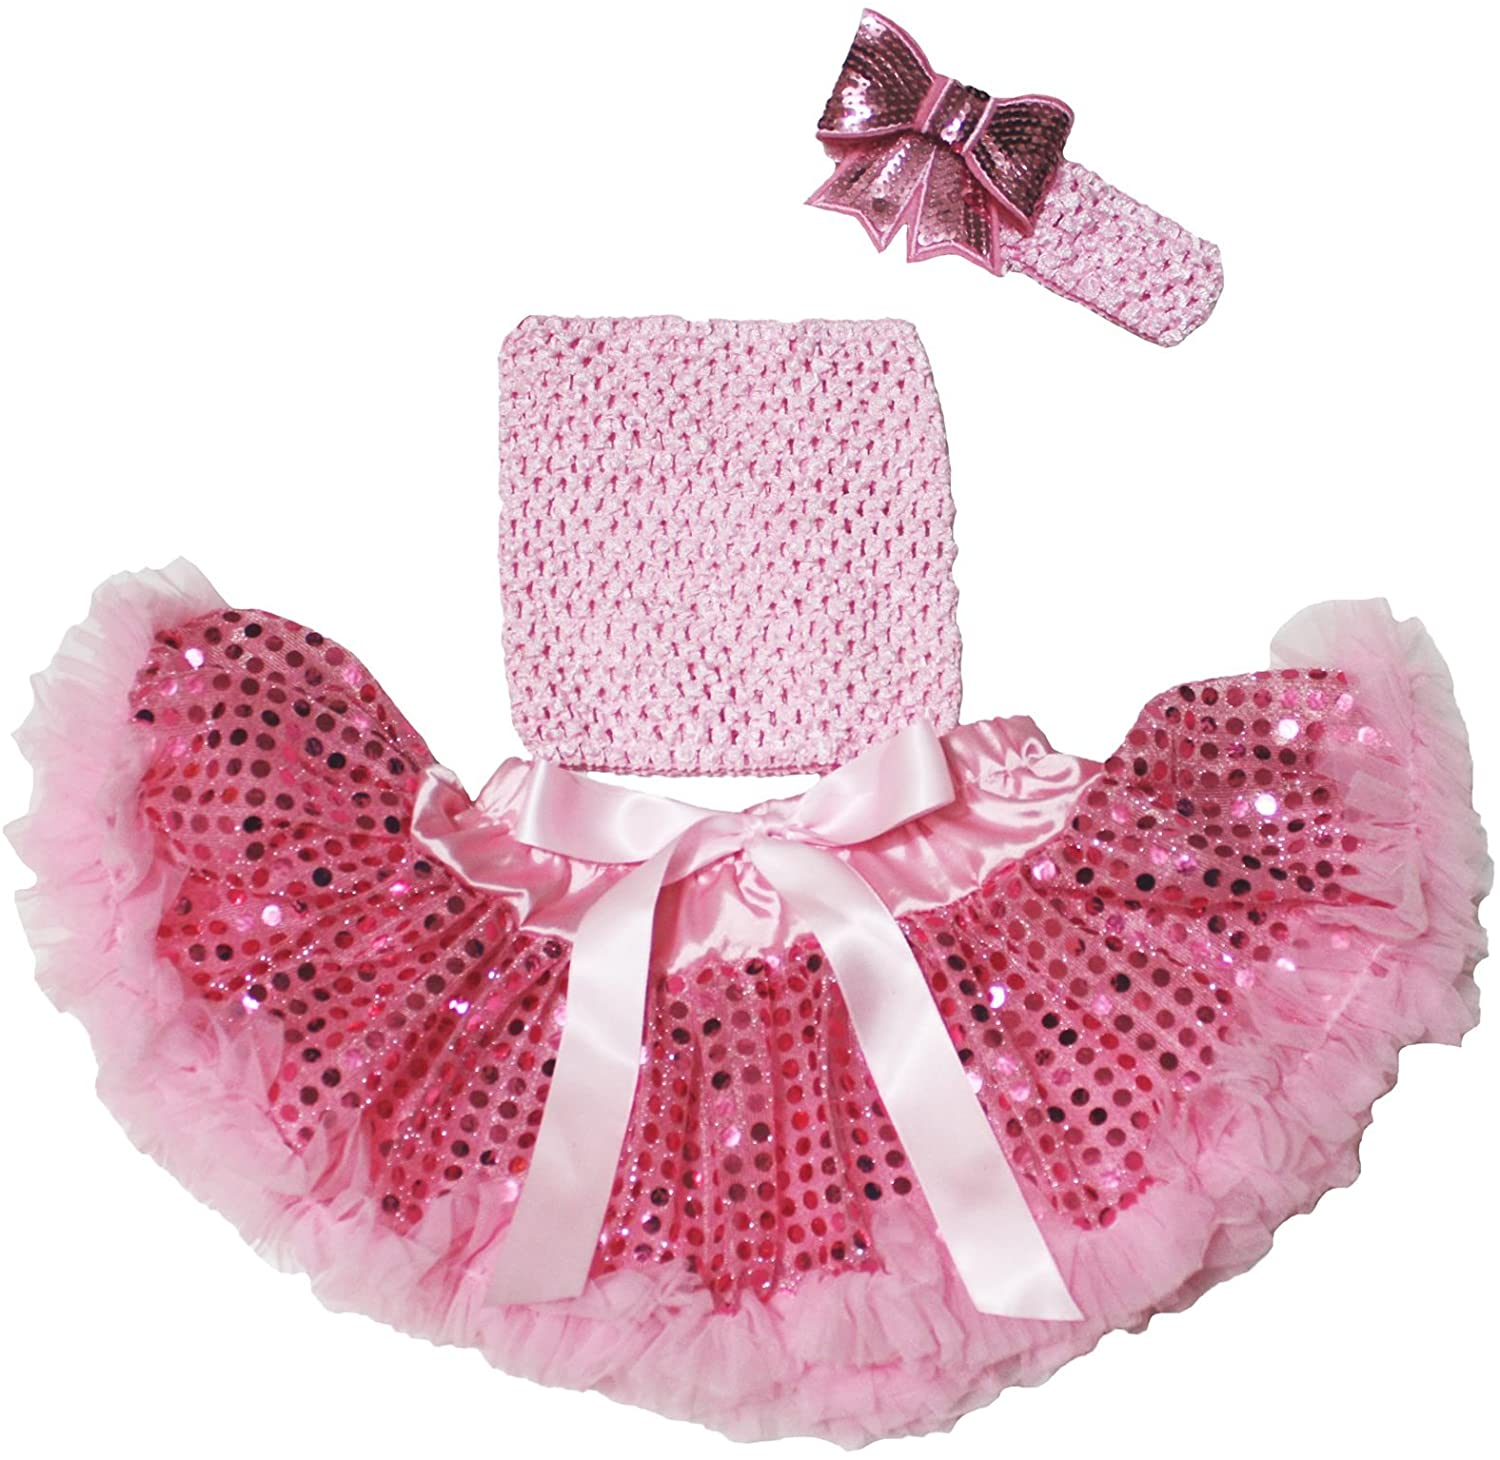 Light Pink Tube Top Sequin Chiffon Pettiskirt Baby Clothing Outfit Set 3-12m